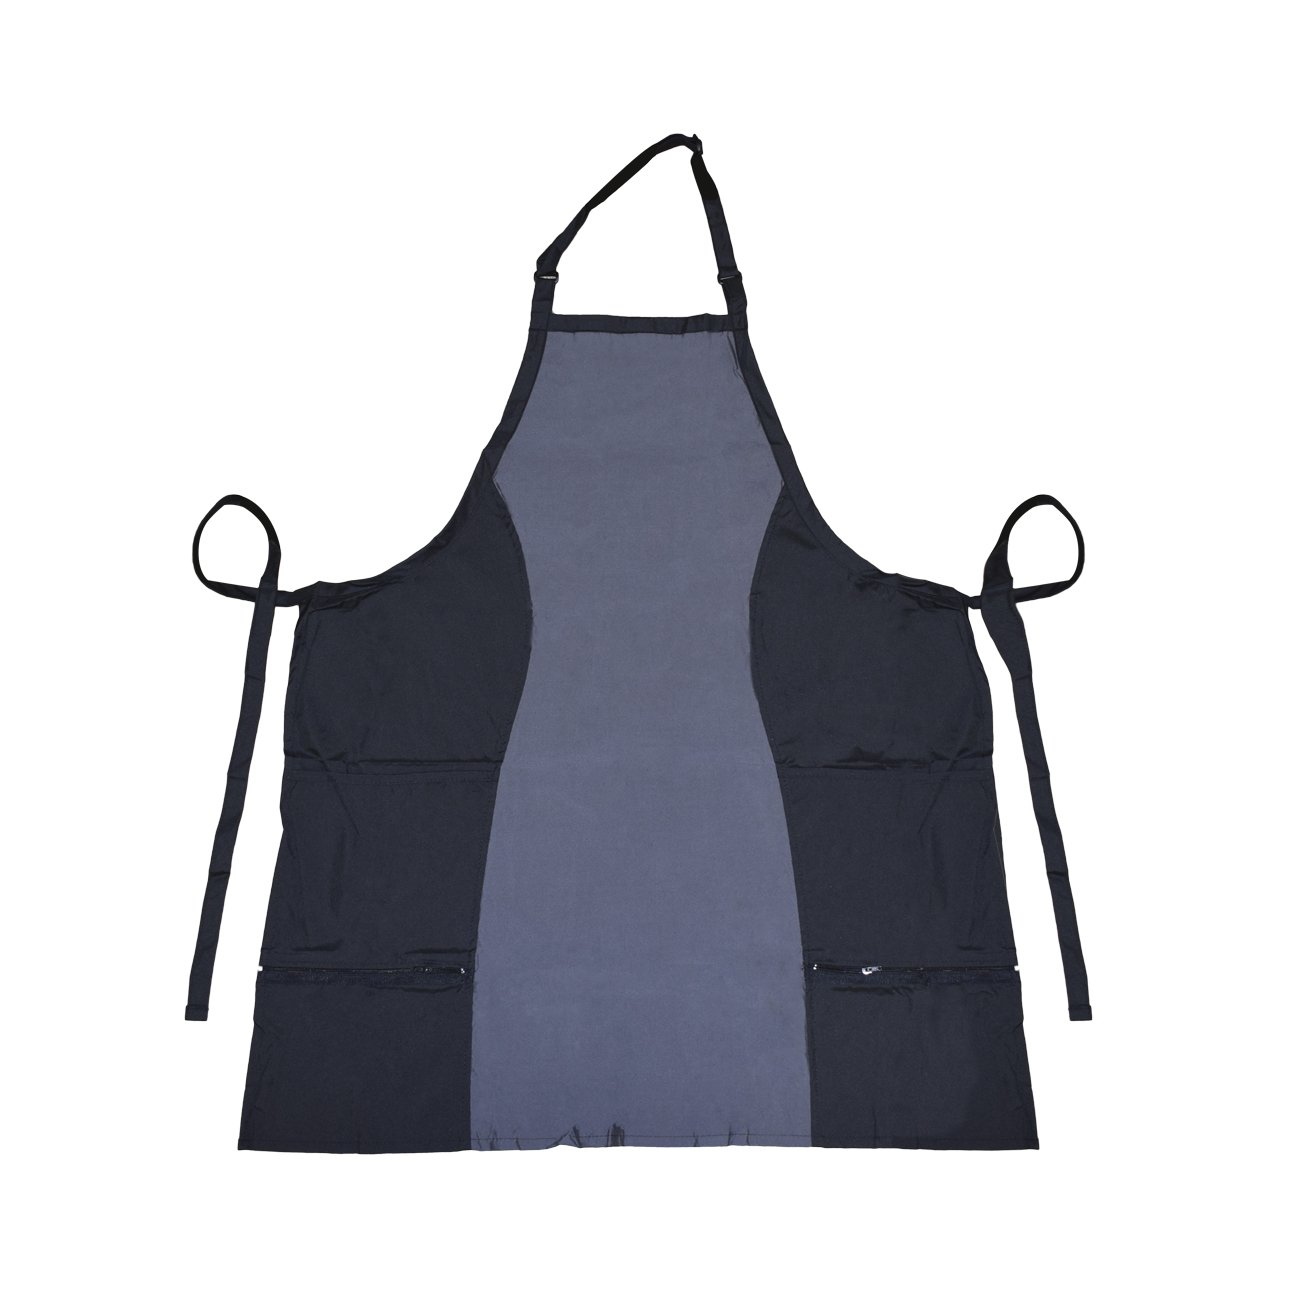 Betty Dain 532 Bleach Proof Hour Glass Apron 0.25-Pound, 1-Count, Black/Pewter